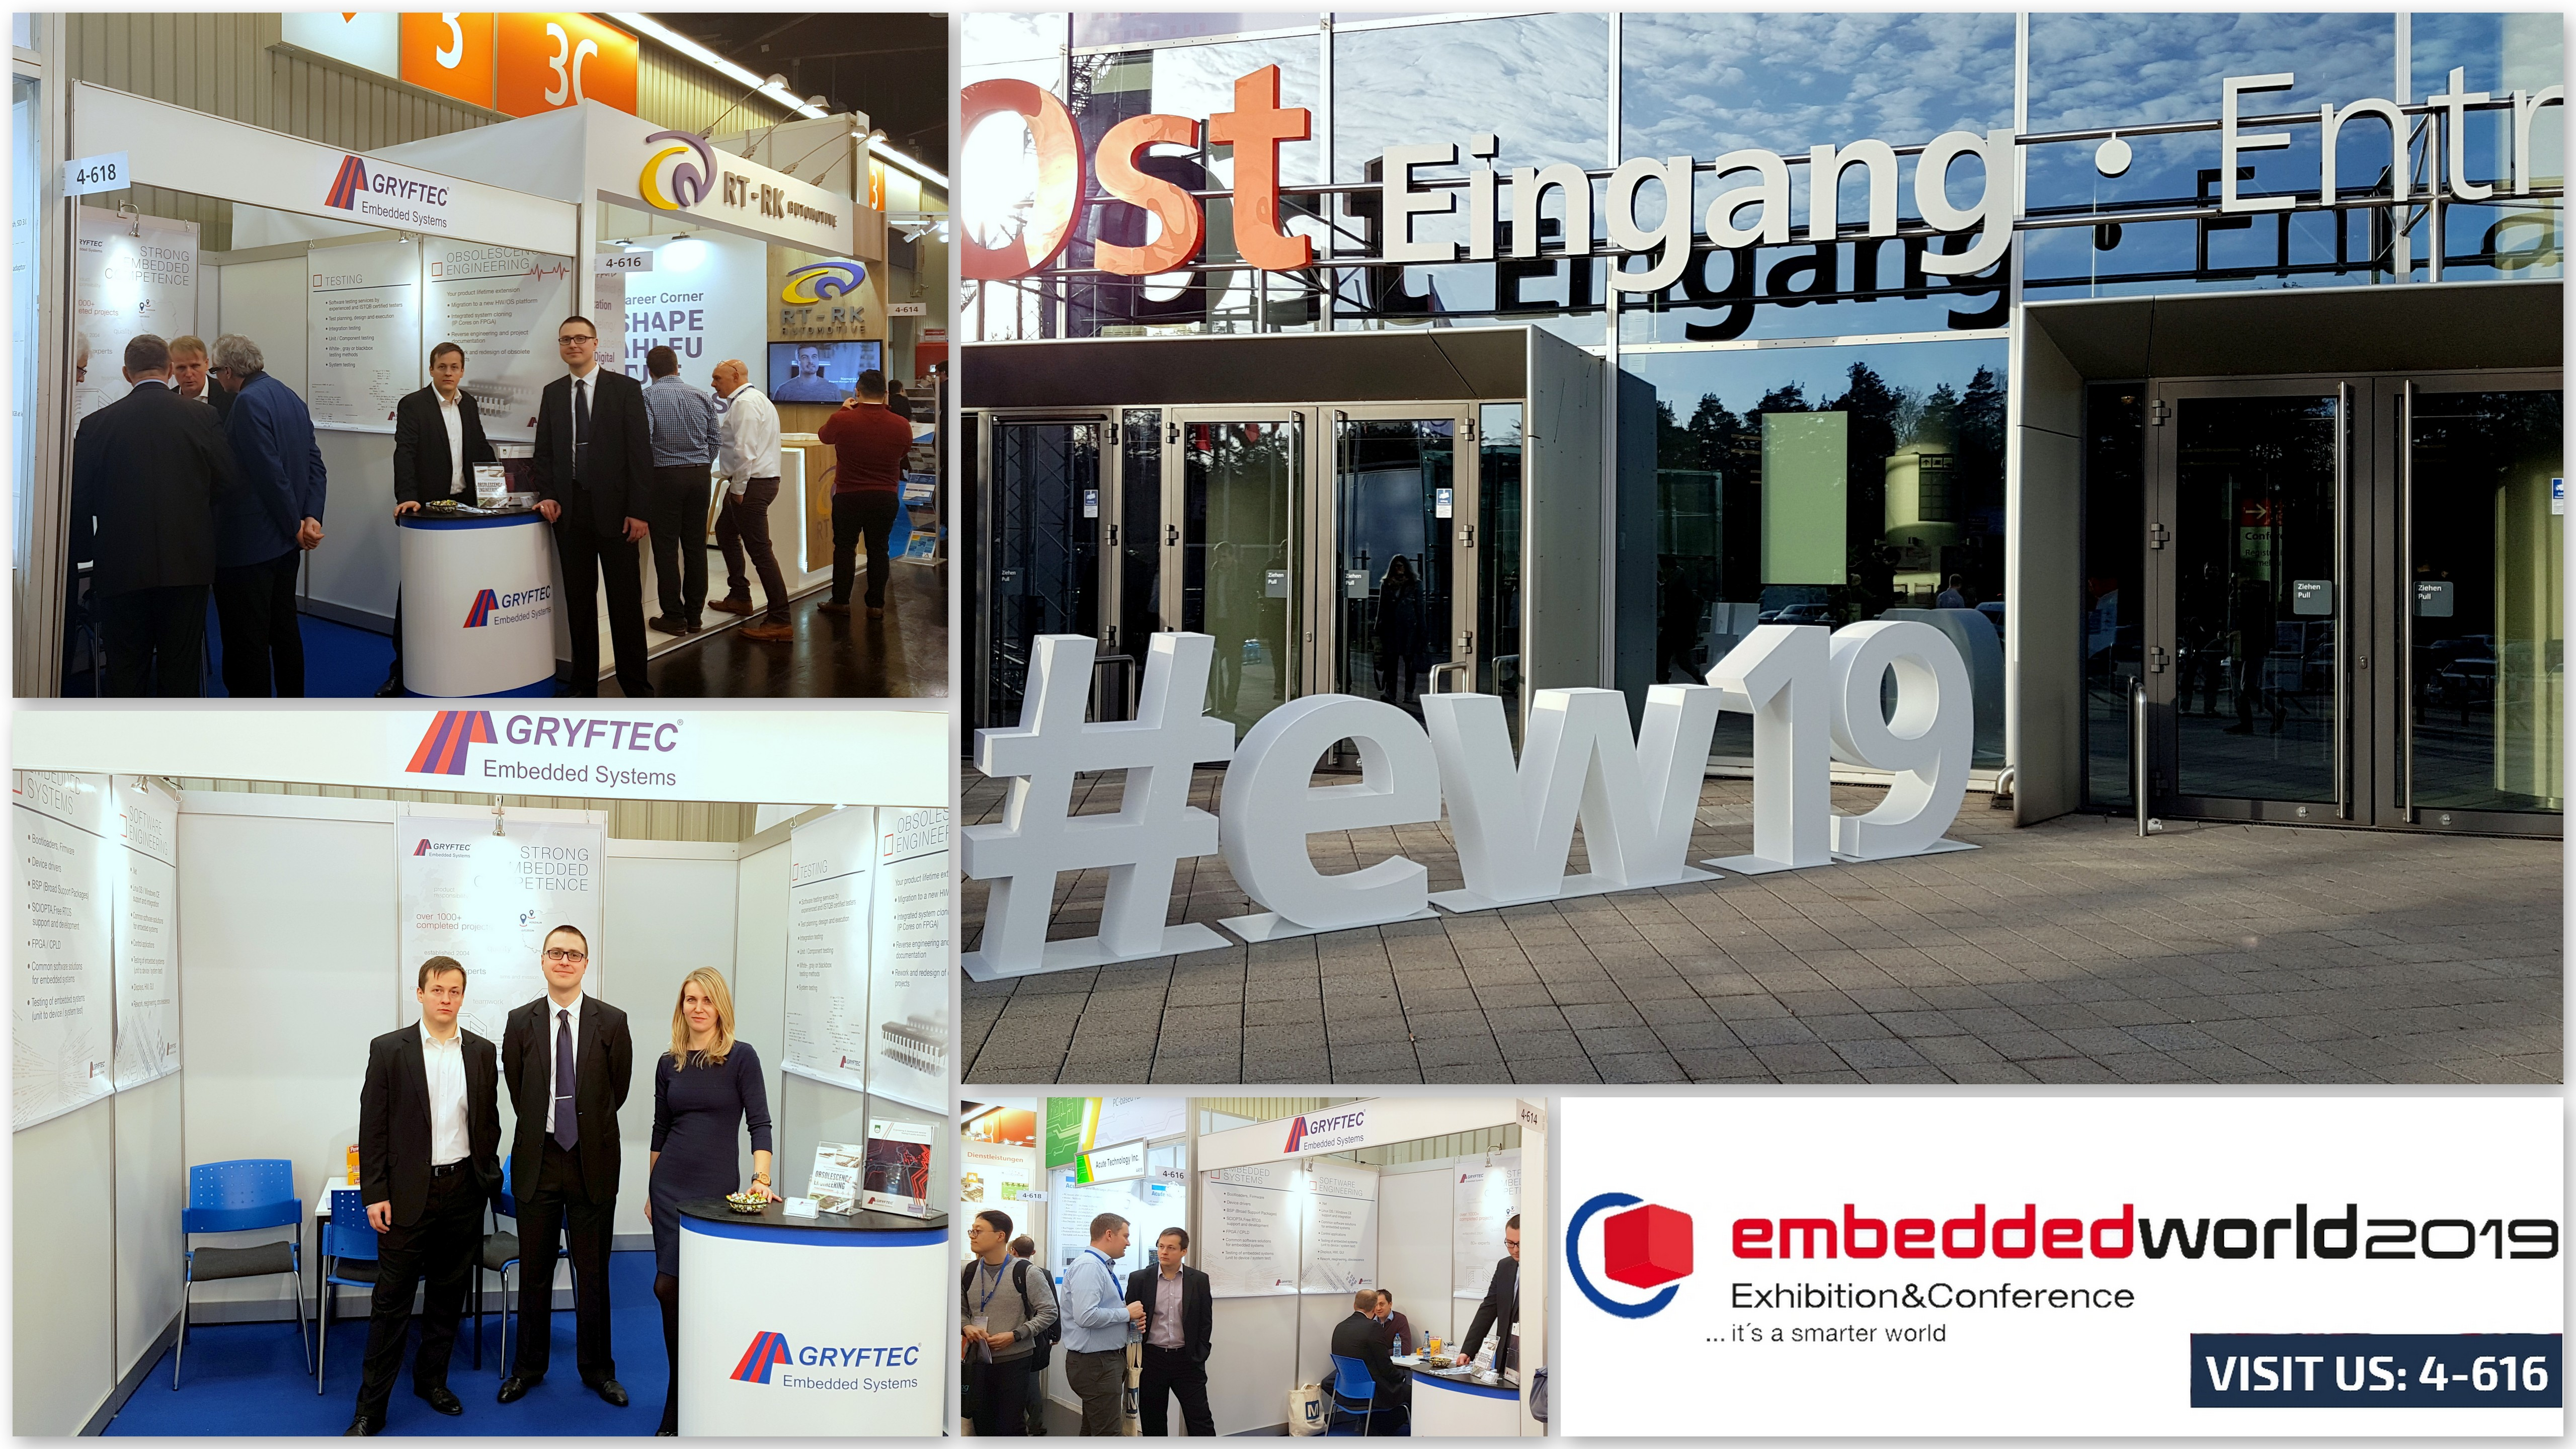 Embedded World exhibitor